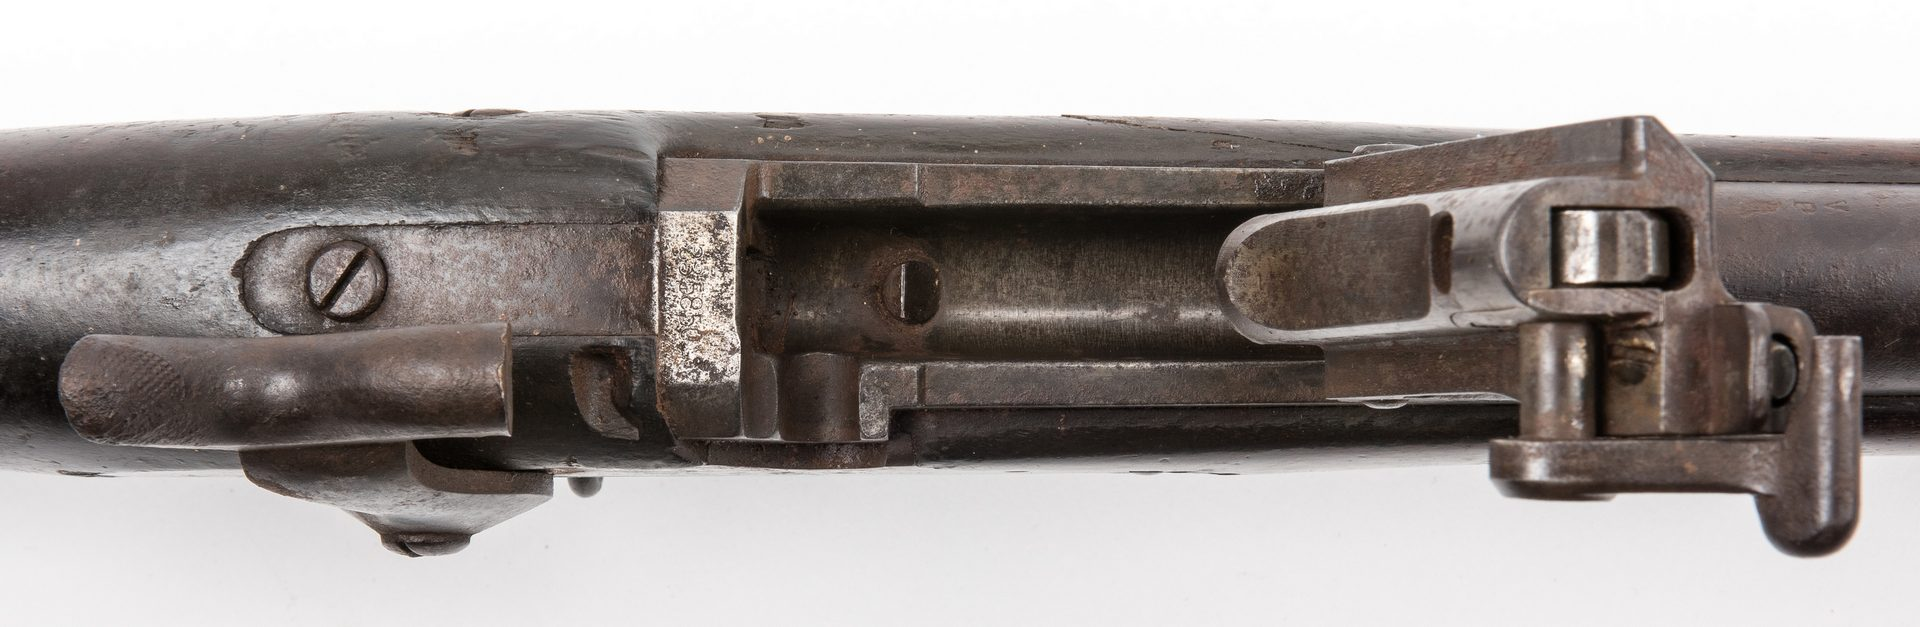 "Lot 826: Springfield Model 1873 ""Trapdoor"" Rifle, .45-70 Cal."